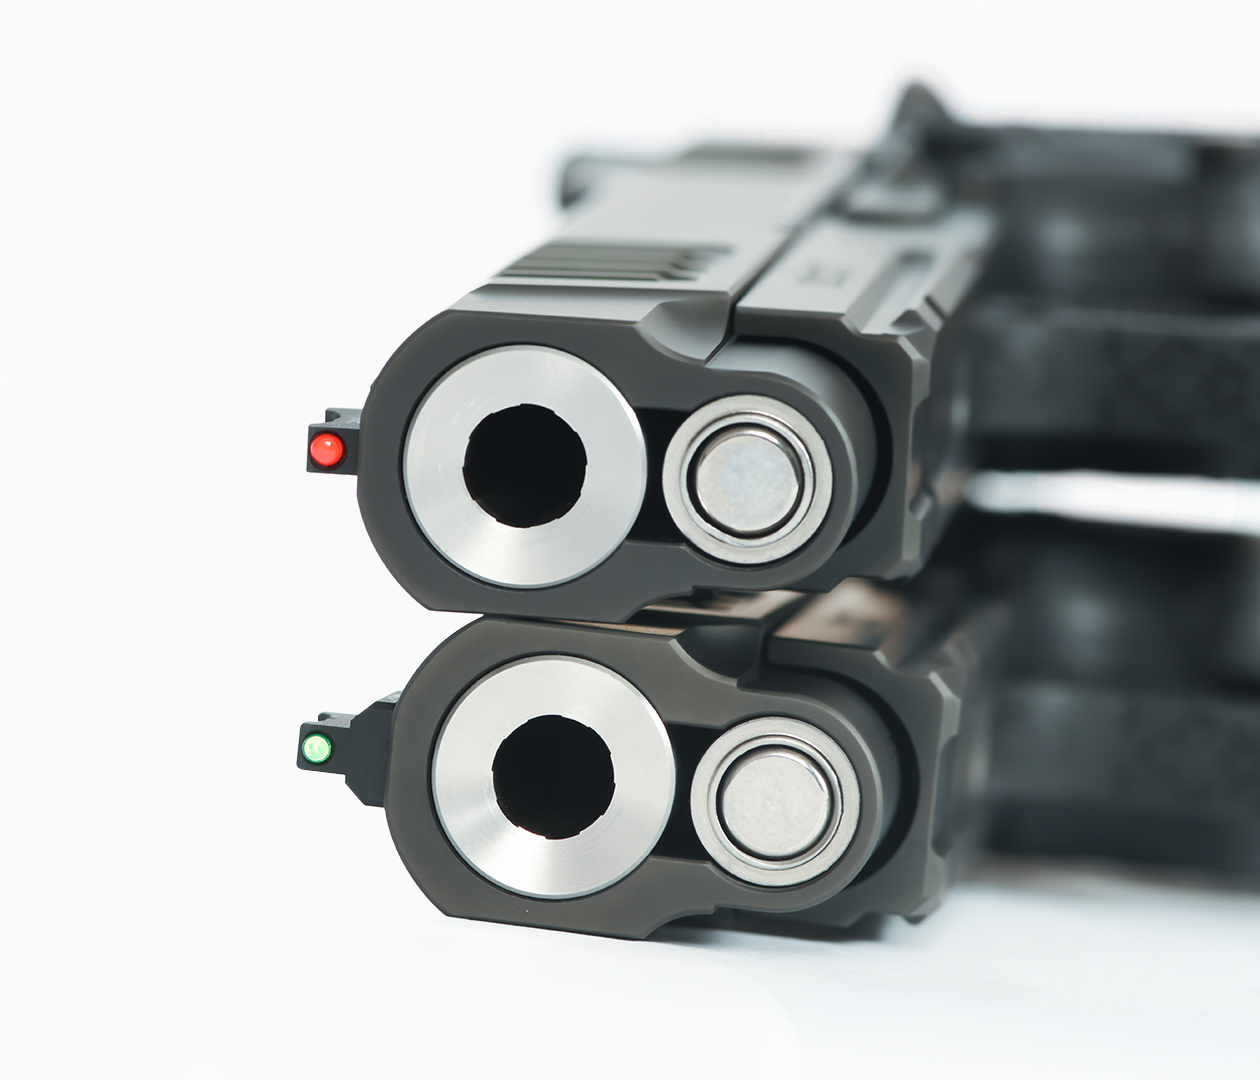 Two Staccato P handguns stacked on top of each other, muzzle view